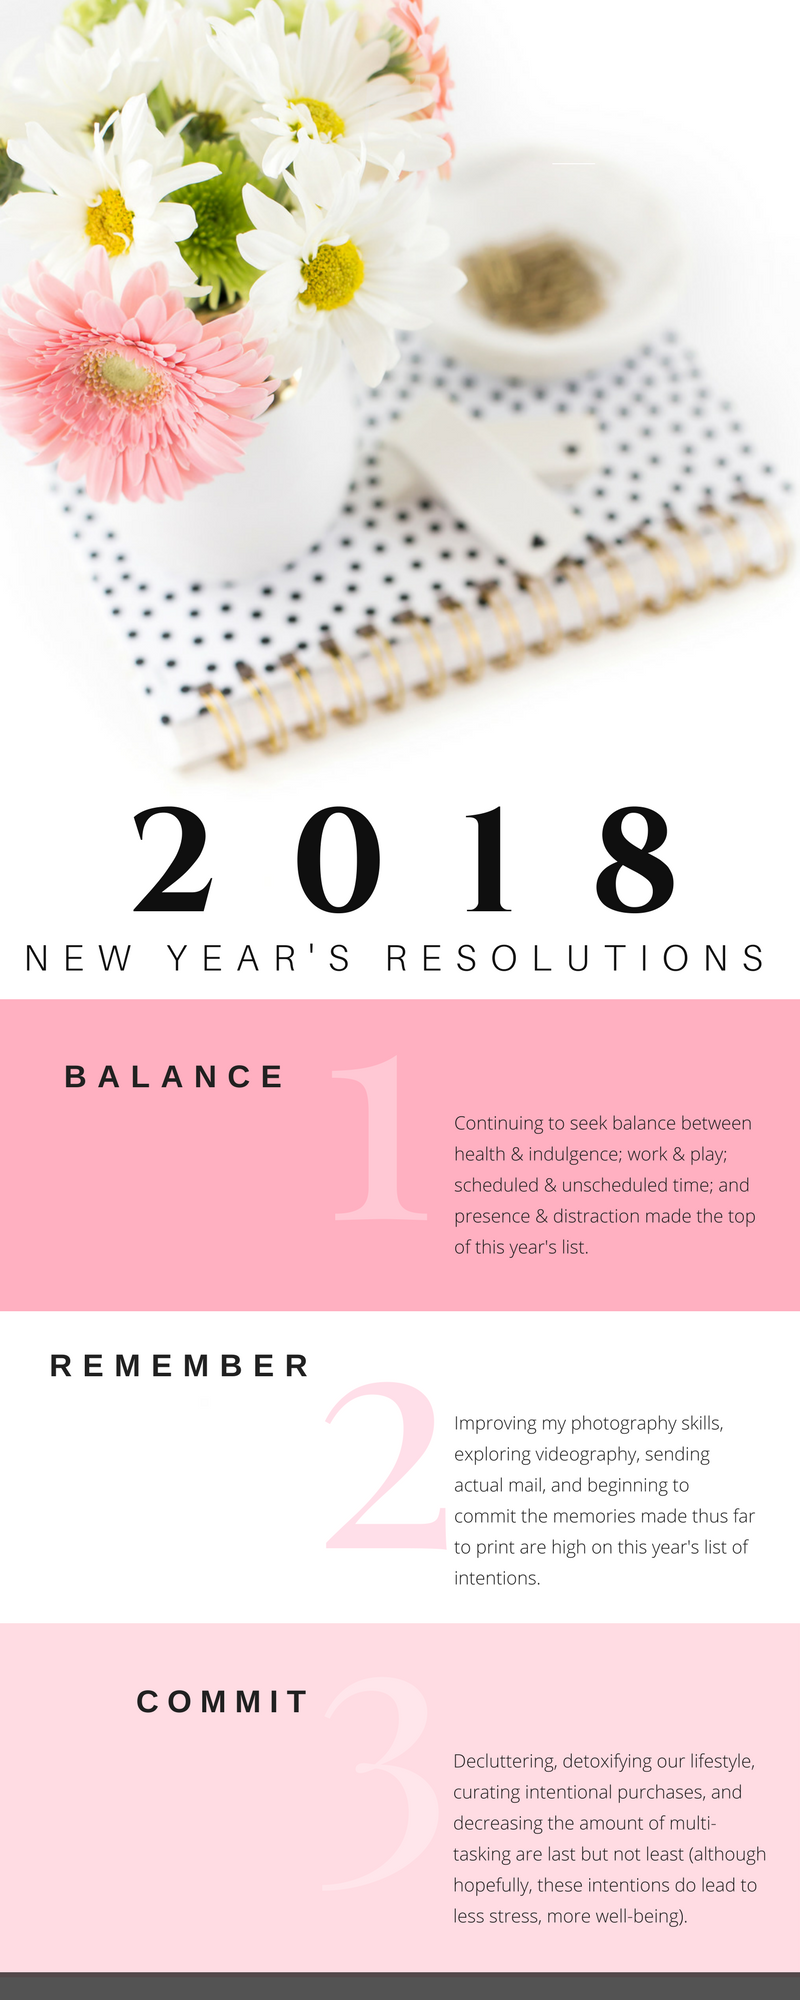 2018 New Year's Resolutions.png